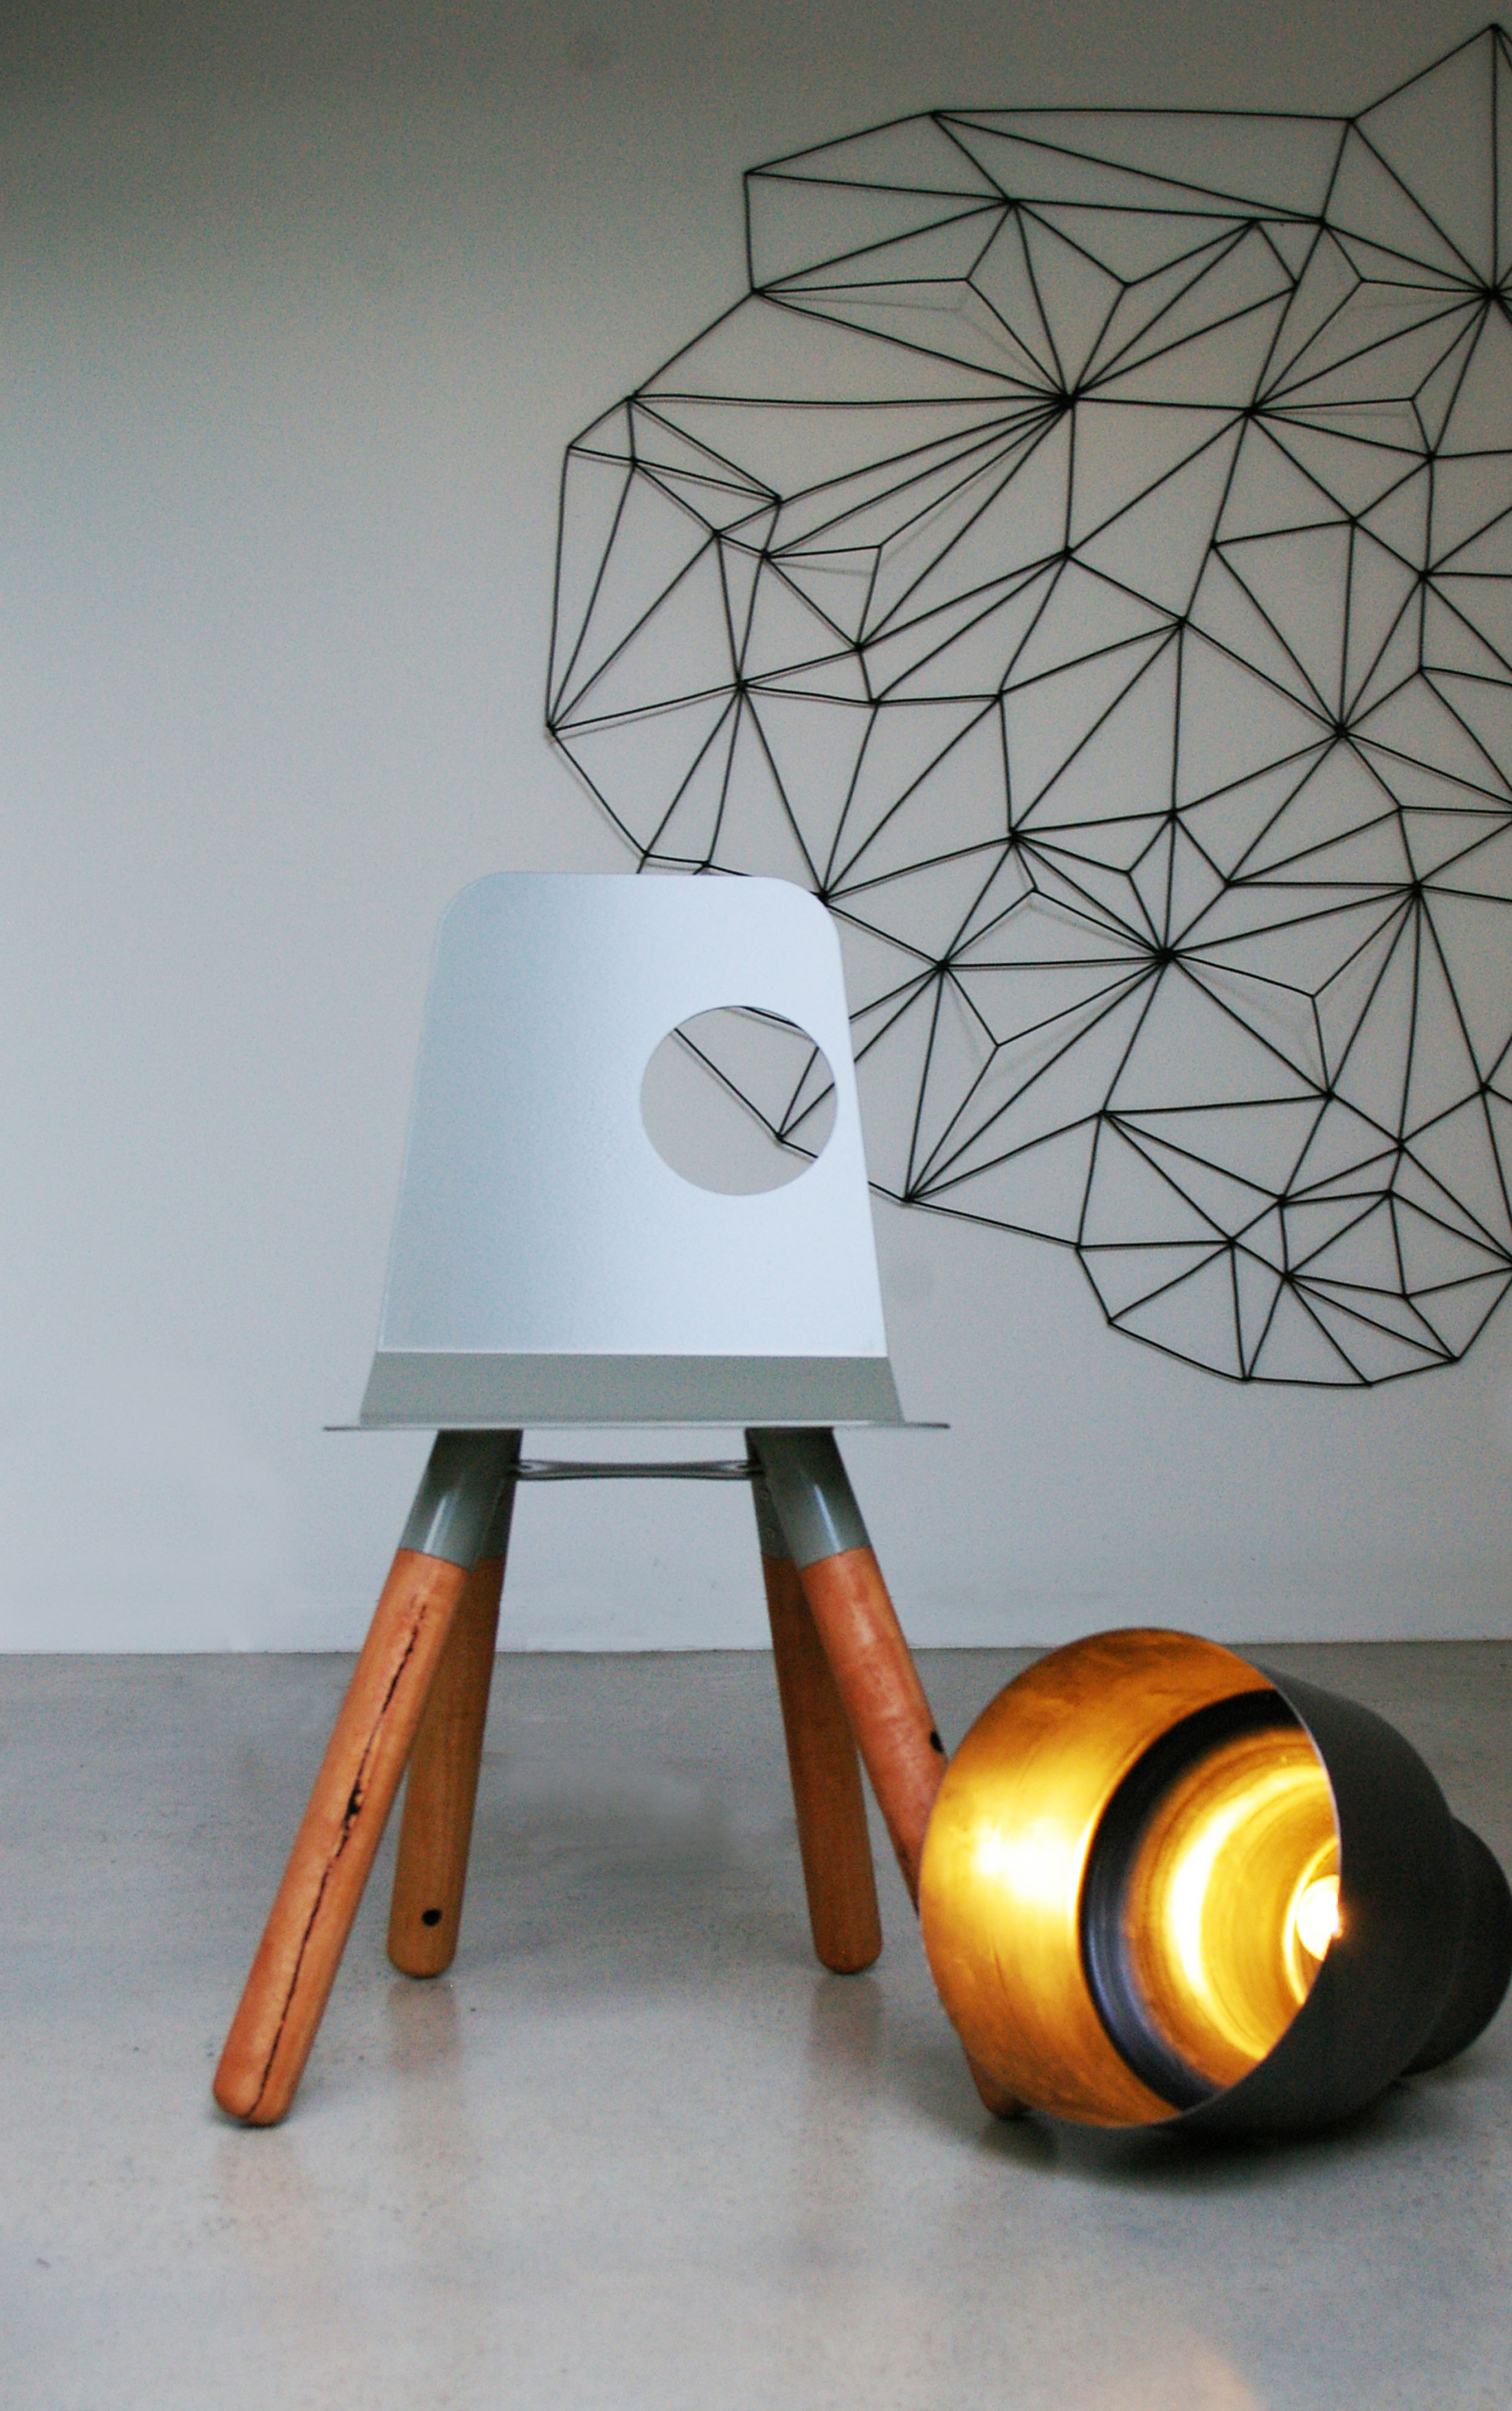 LifeSpaceJourney Full Moon Chair